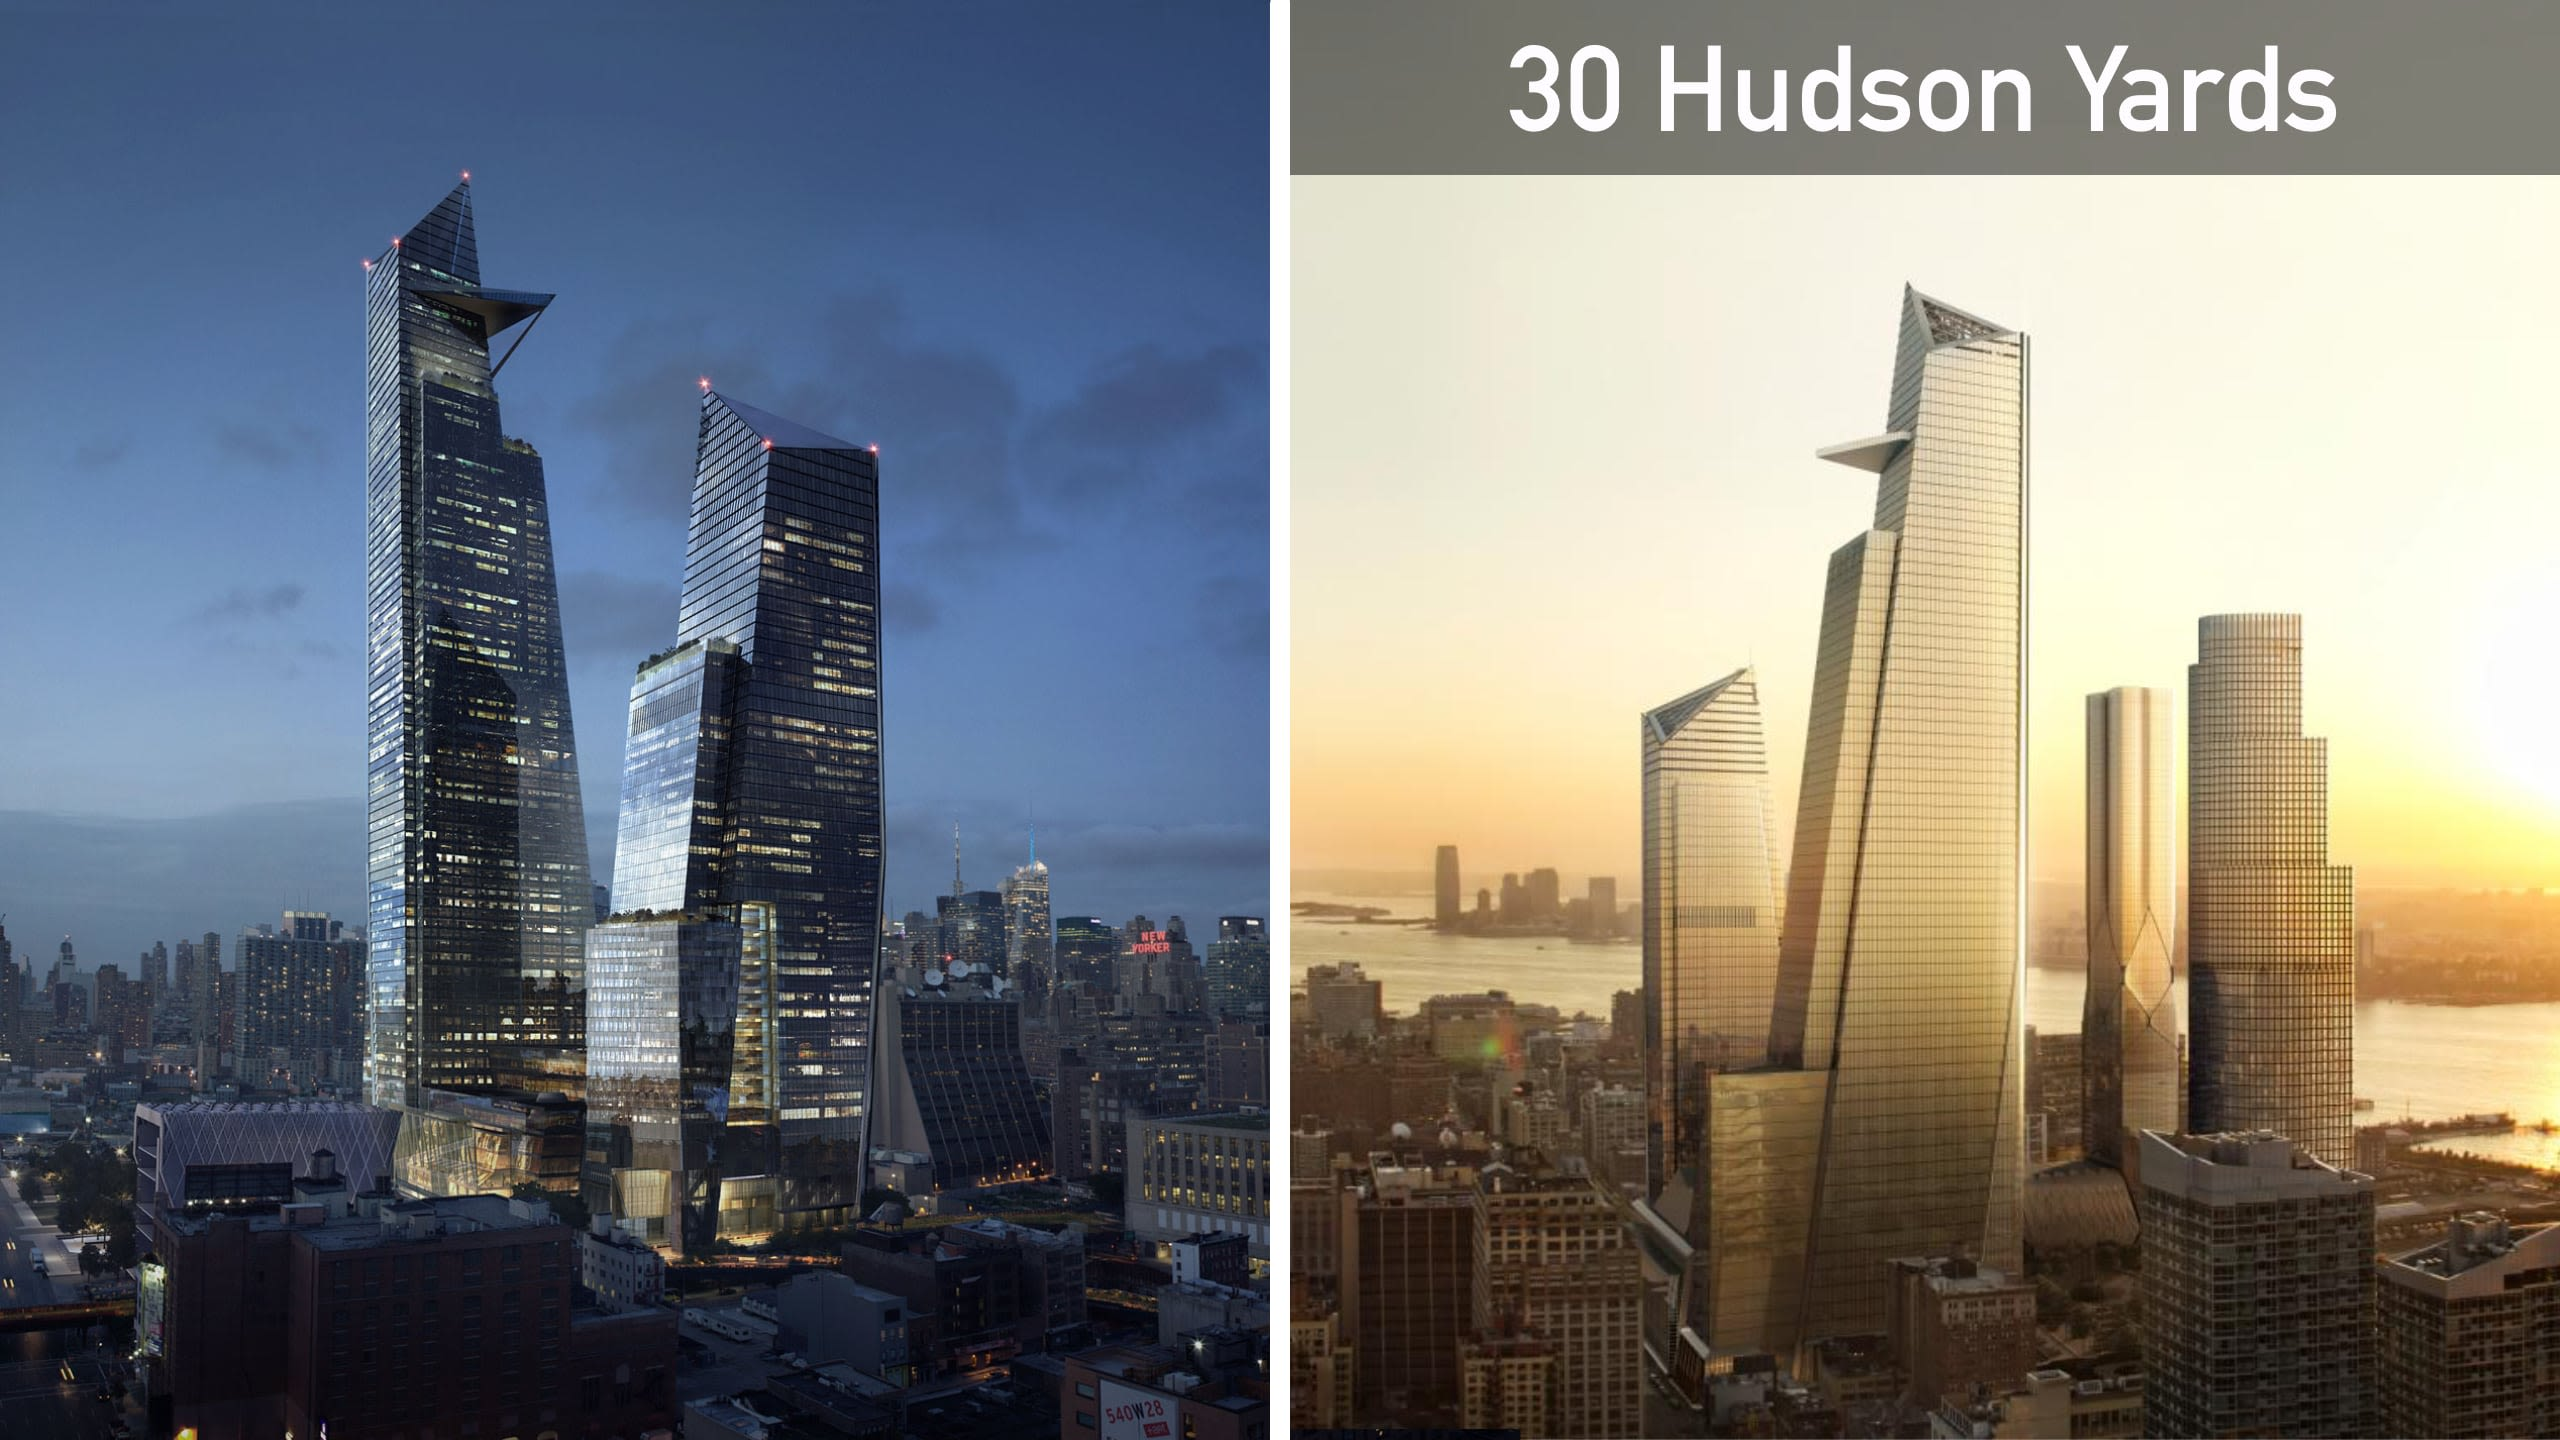 30 Hudson Yards at day and at night